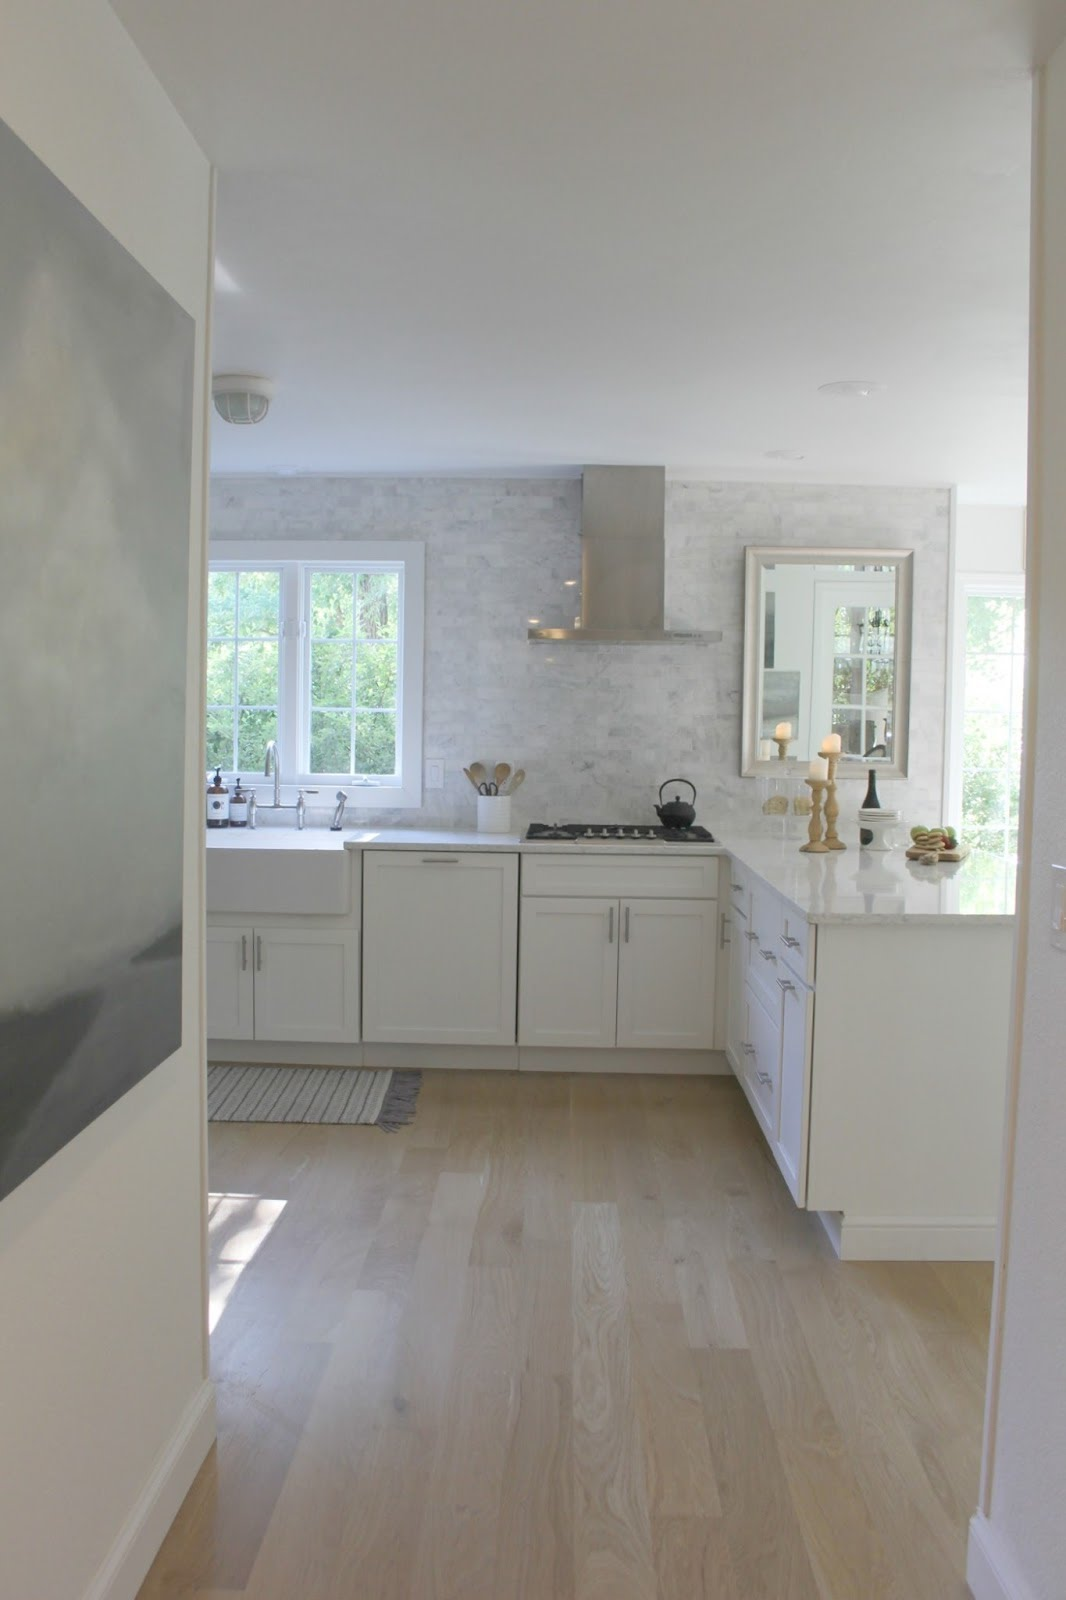 Serene white modern farmhouse kitchen with European inspired details. Shaker cabinets, marble subway tile, white oak hardwood, and abstract painting on wall. #whitekitchen #kitchendecor #modernfarmhouse #kitchenideas #serene #hellolovelystudio #whitedecor